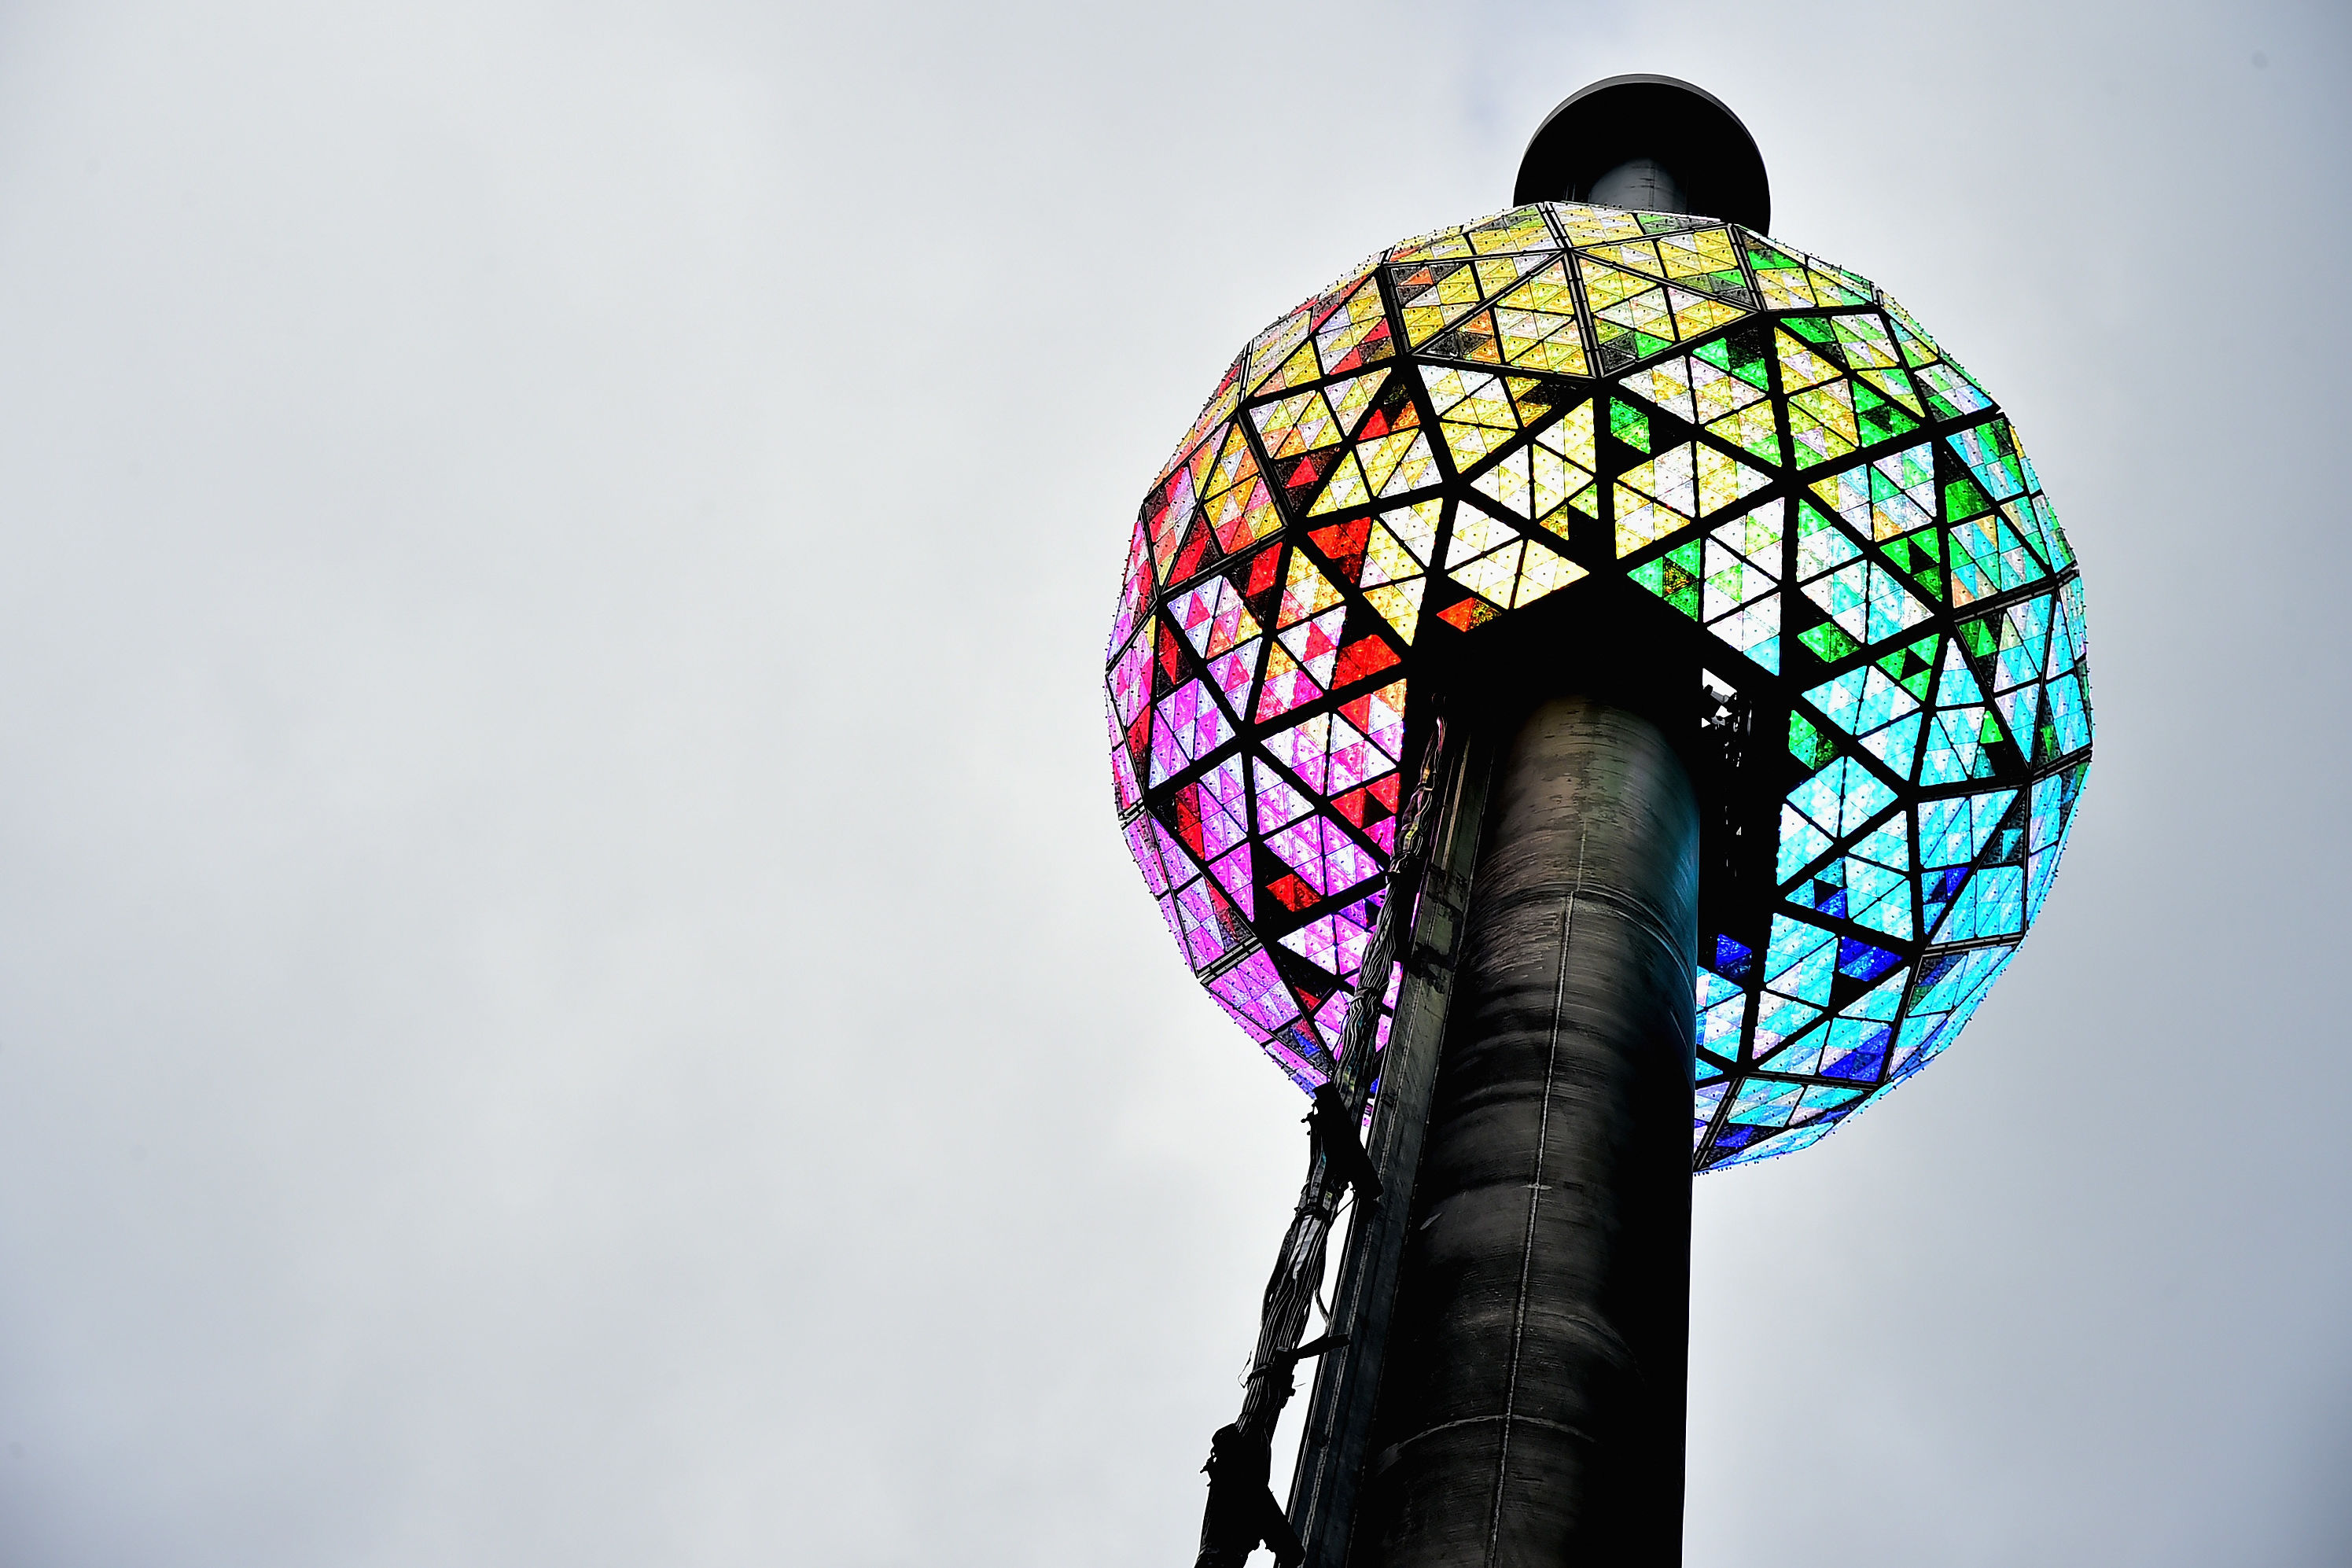 The Real Reason a Ball Drops in Times Square on New Year's Eve